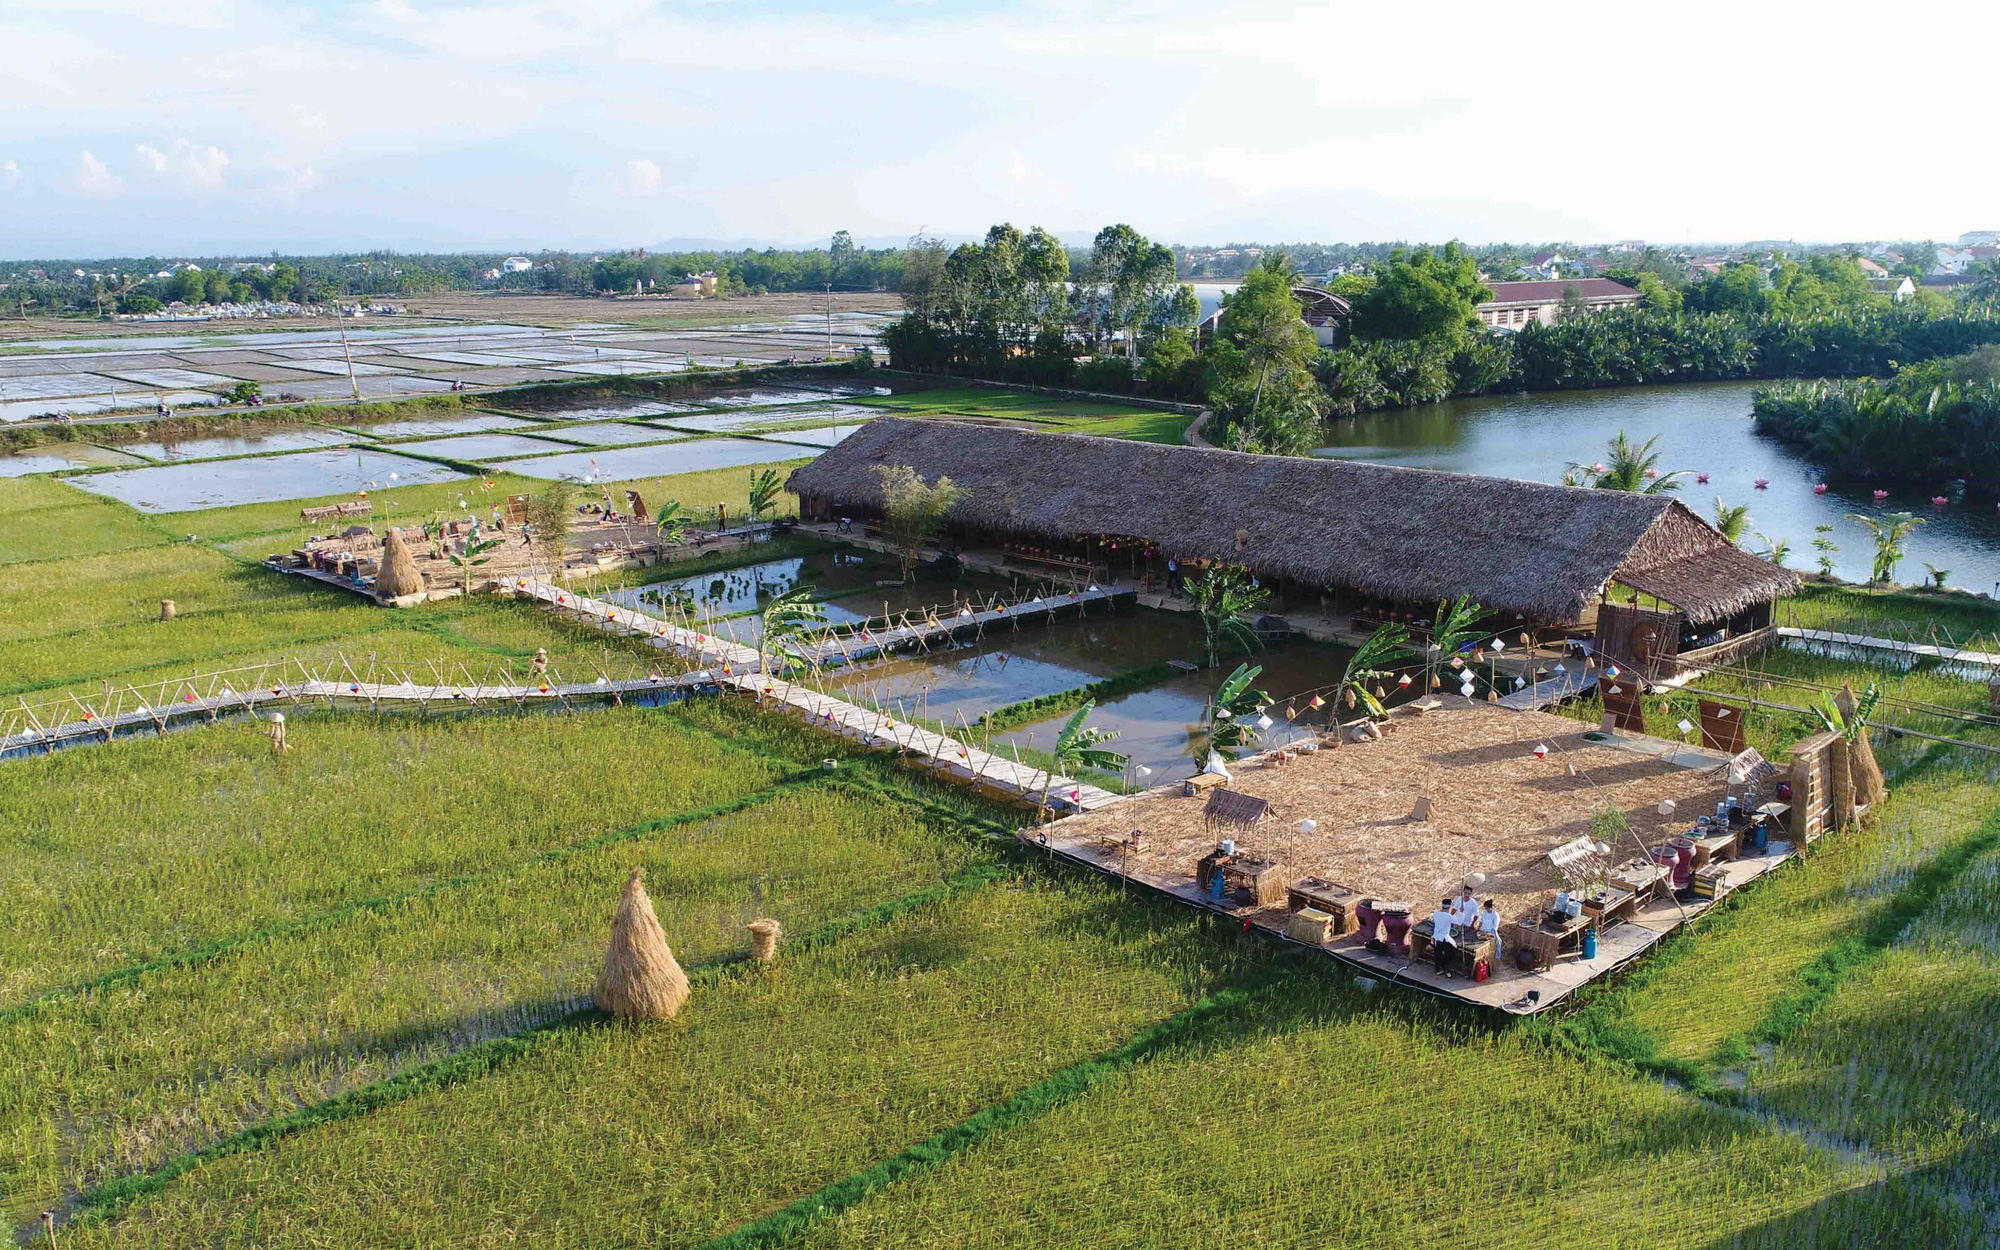 A bird eye's view of The Field Restaurant located in Cam Thanh Commune, Hoi An City, Quang Nam Province in central Vietnam. Photo: Thai Ba Dung / Tuoi Tre